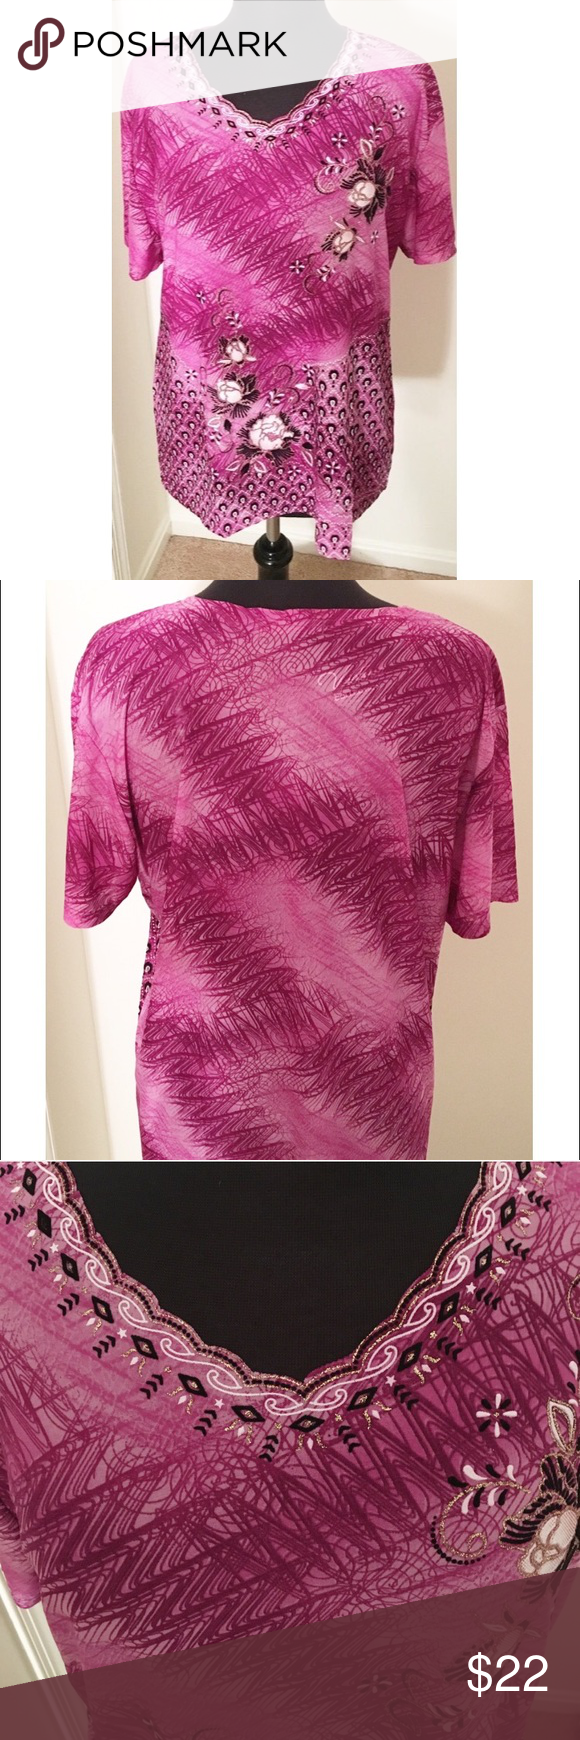 ✨GLAM BLING TOP NWT✨ FITS 14/16 Tight fit and pretty print. Tops